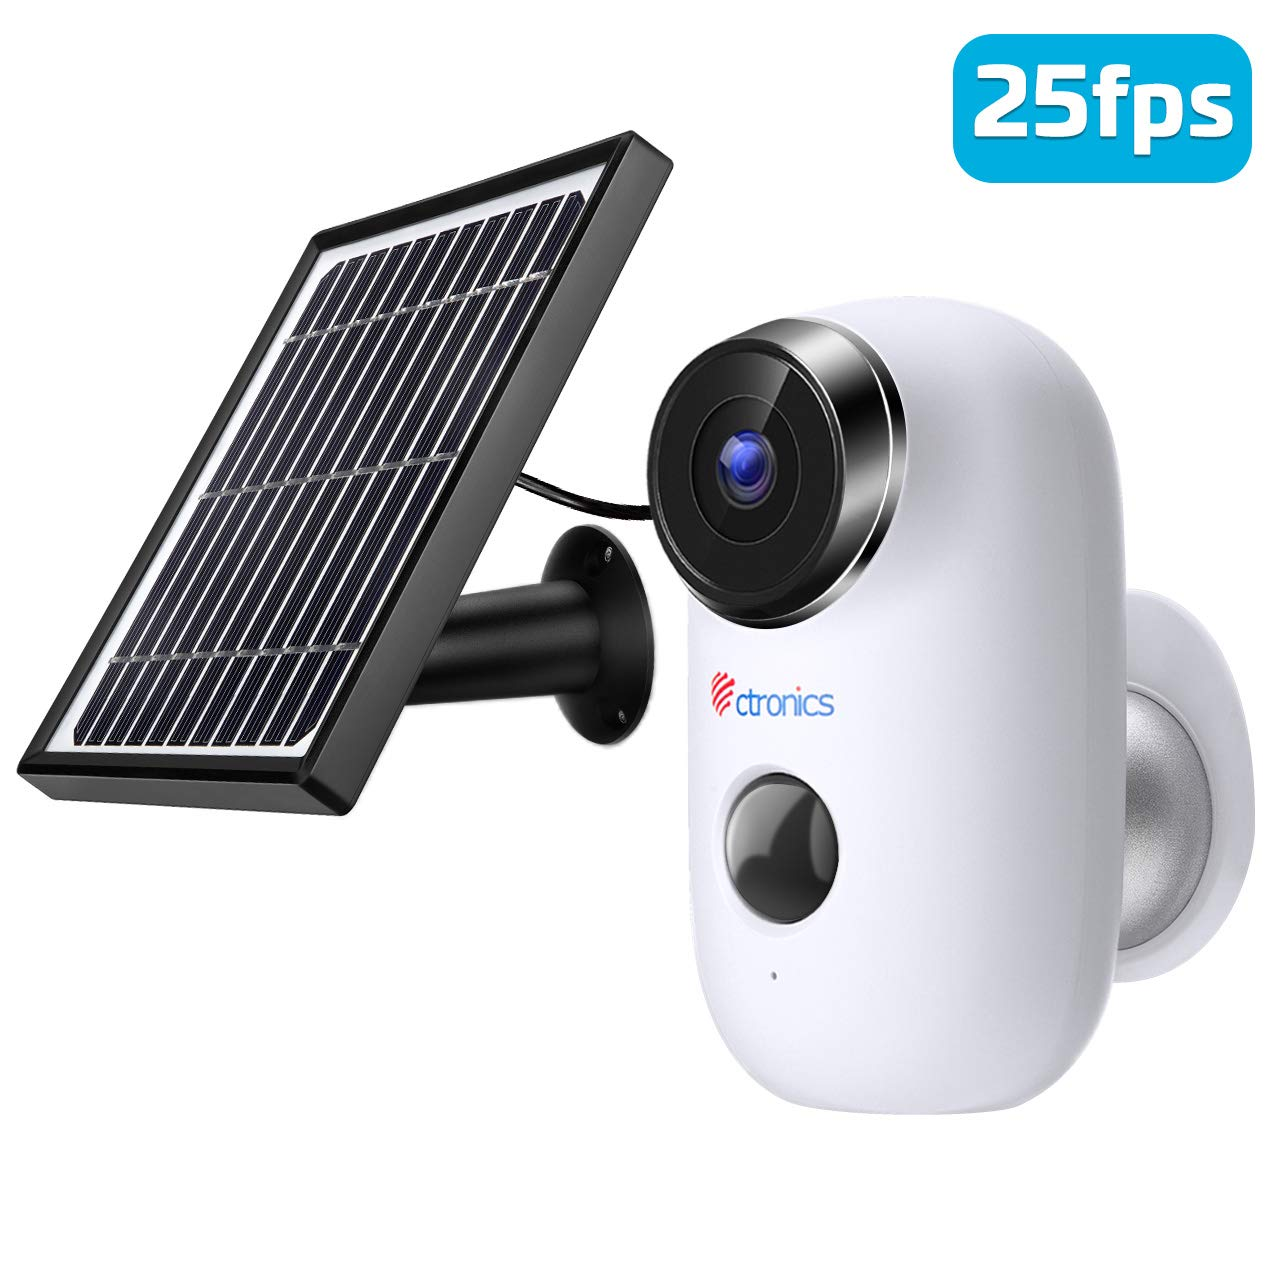 25fps Wireless Rechargeable Battery-Powered Solar Security Camera for Home Outdoor/Indoor, Ctronics WiFi Security Camera System with 1080P HDR, PIR Motion Detection, Night Vision, 2-Way Audio, IP66 by Ctronics